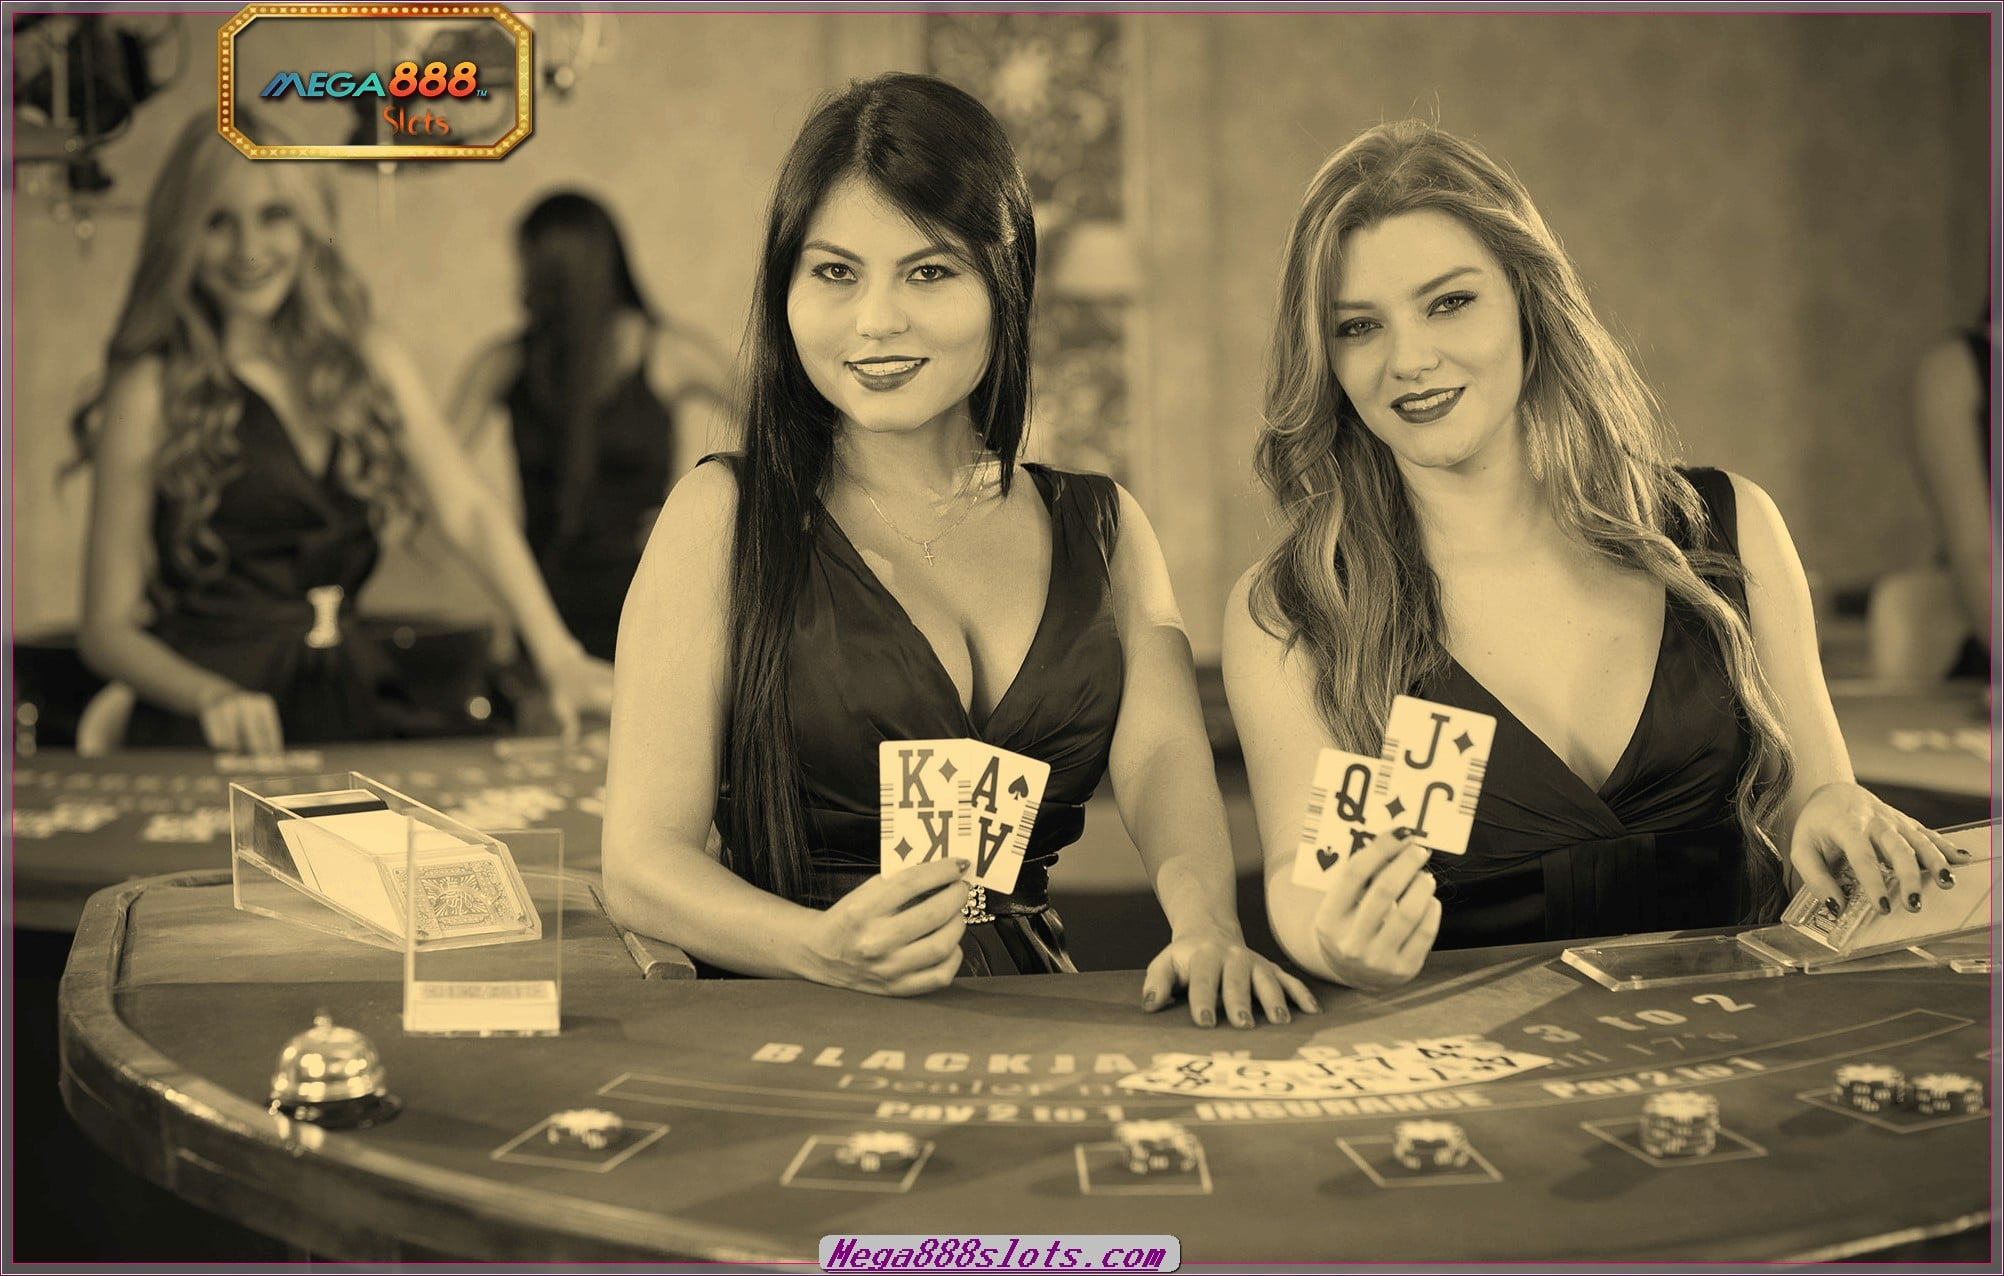 Live22 Live Casino Ⓜ APK & IOS Download 2021 – 2022